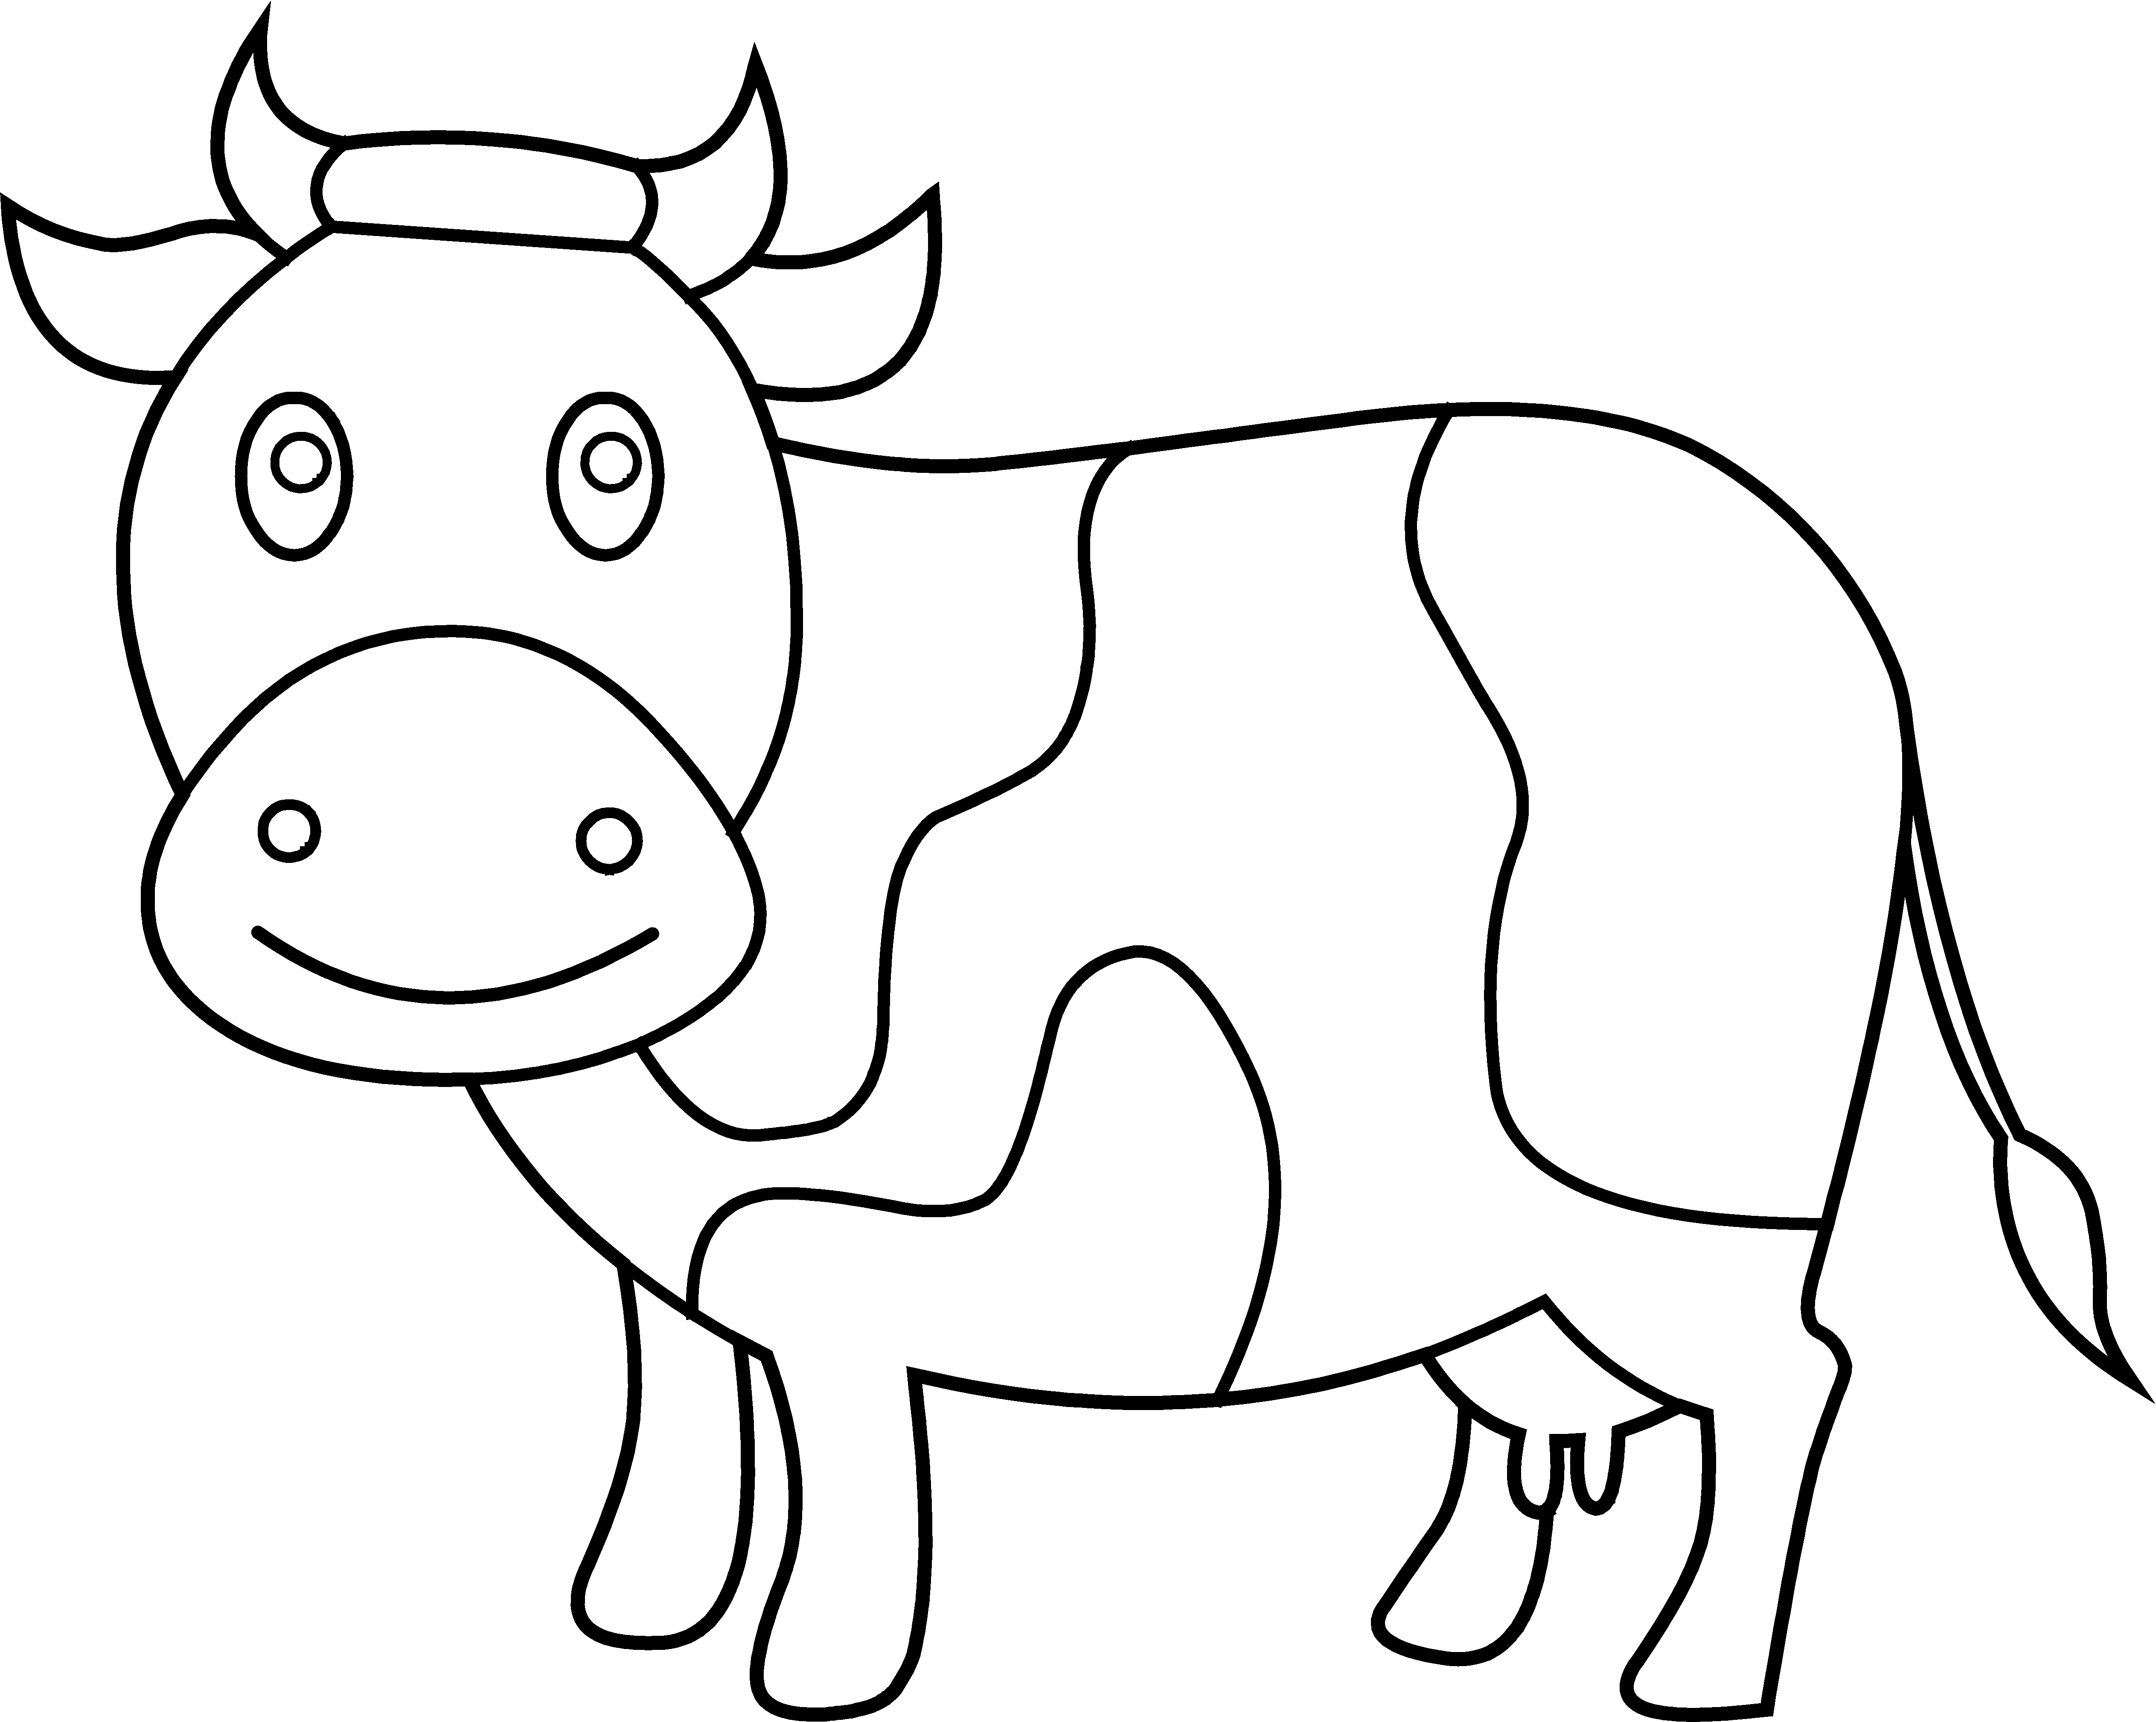 clip art coloring pages cute cow coloring page free clip art art coloring pages clip